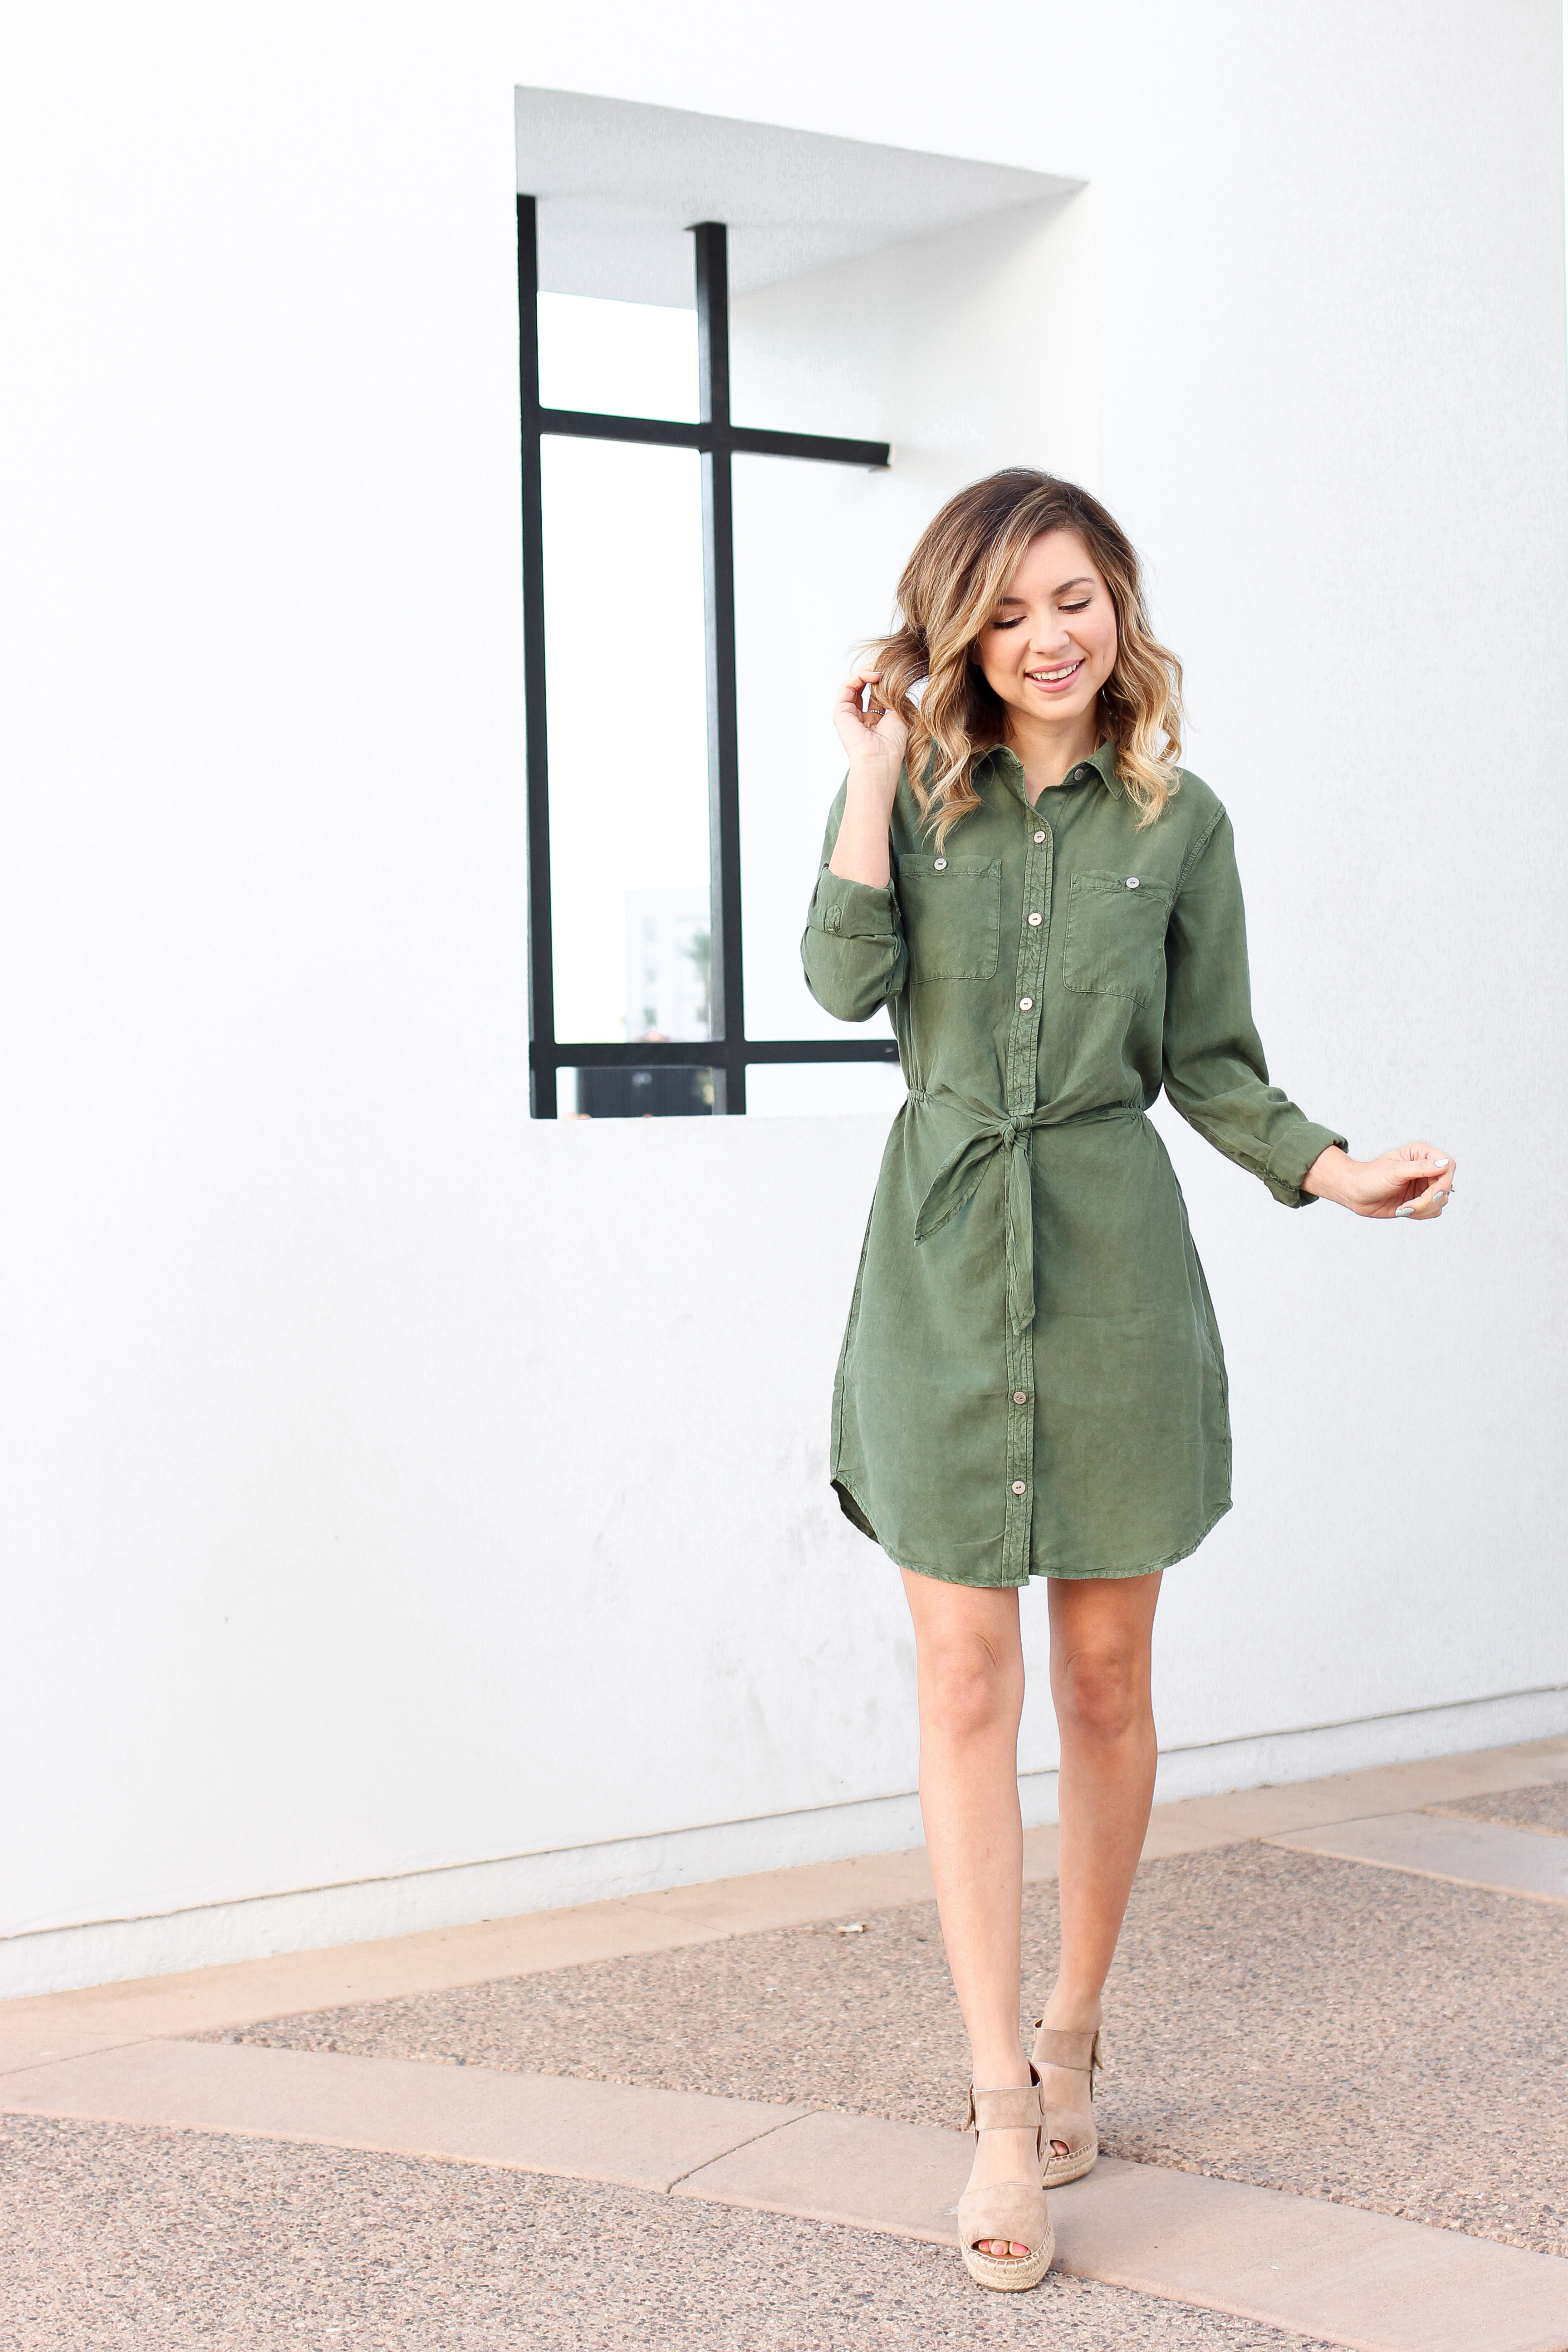 Simply Sutter - Tie Front Dress - Olive Dress - Spring Dress